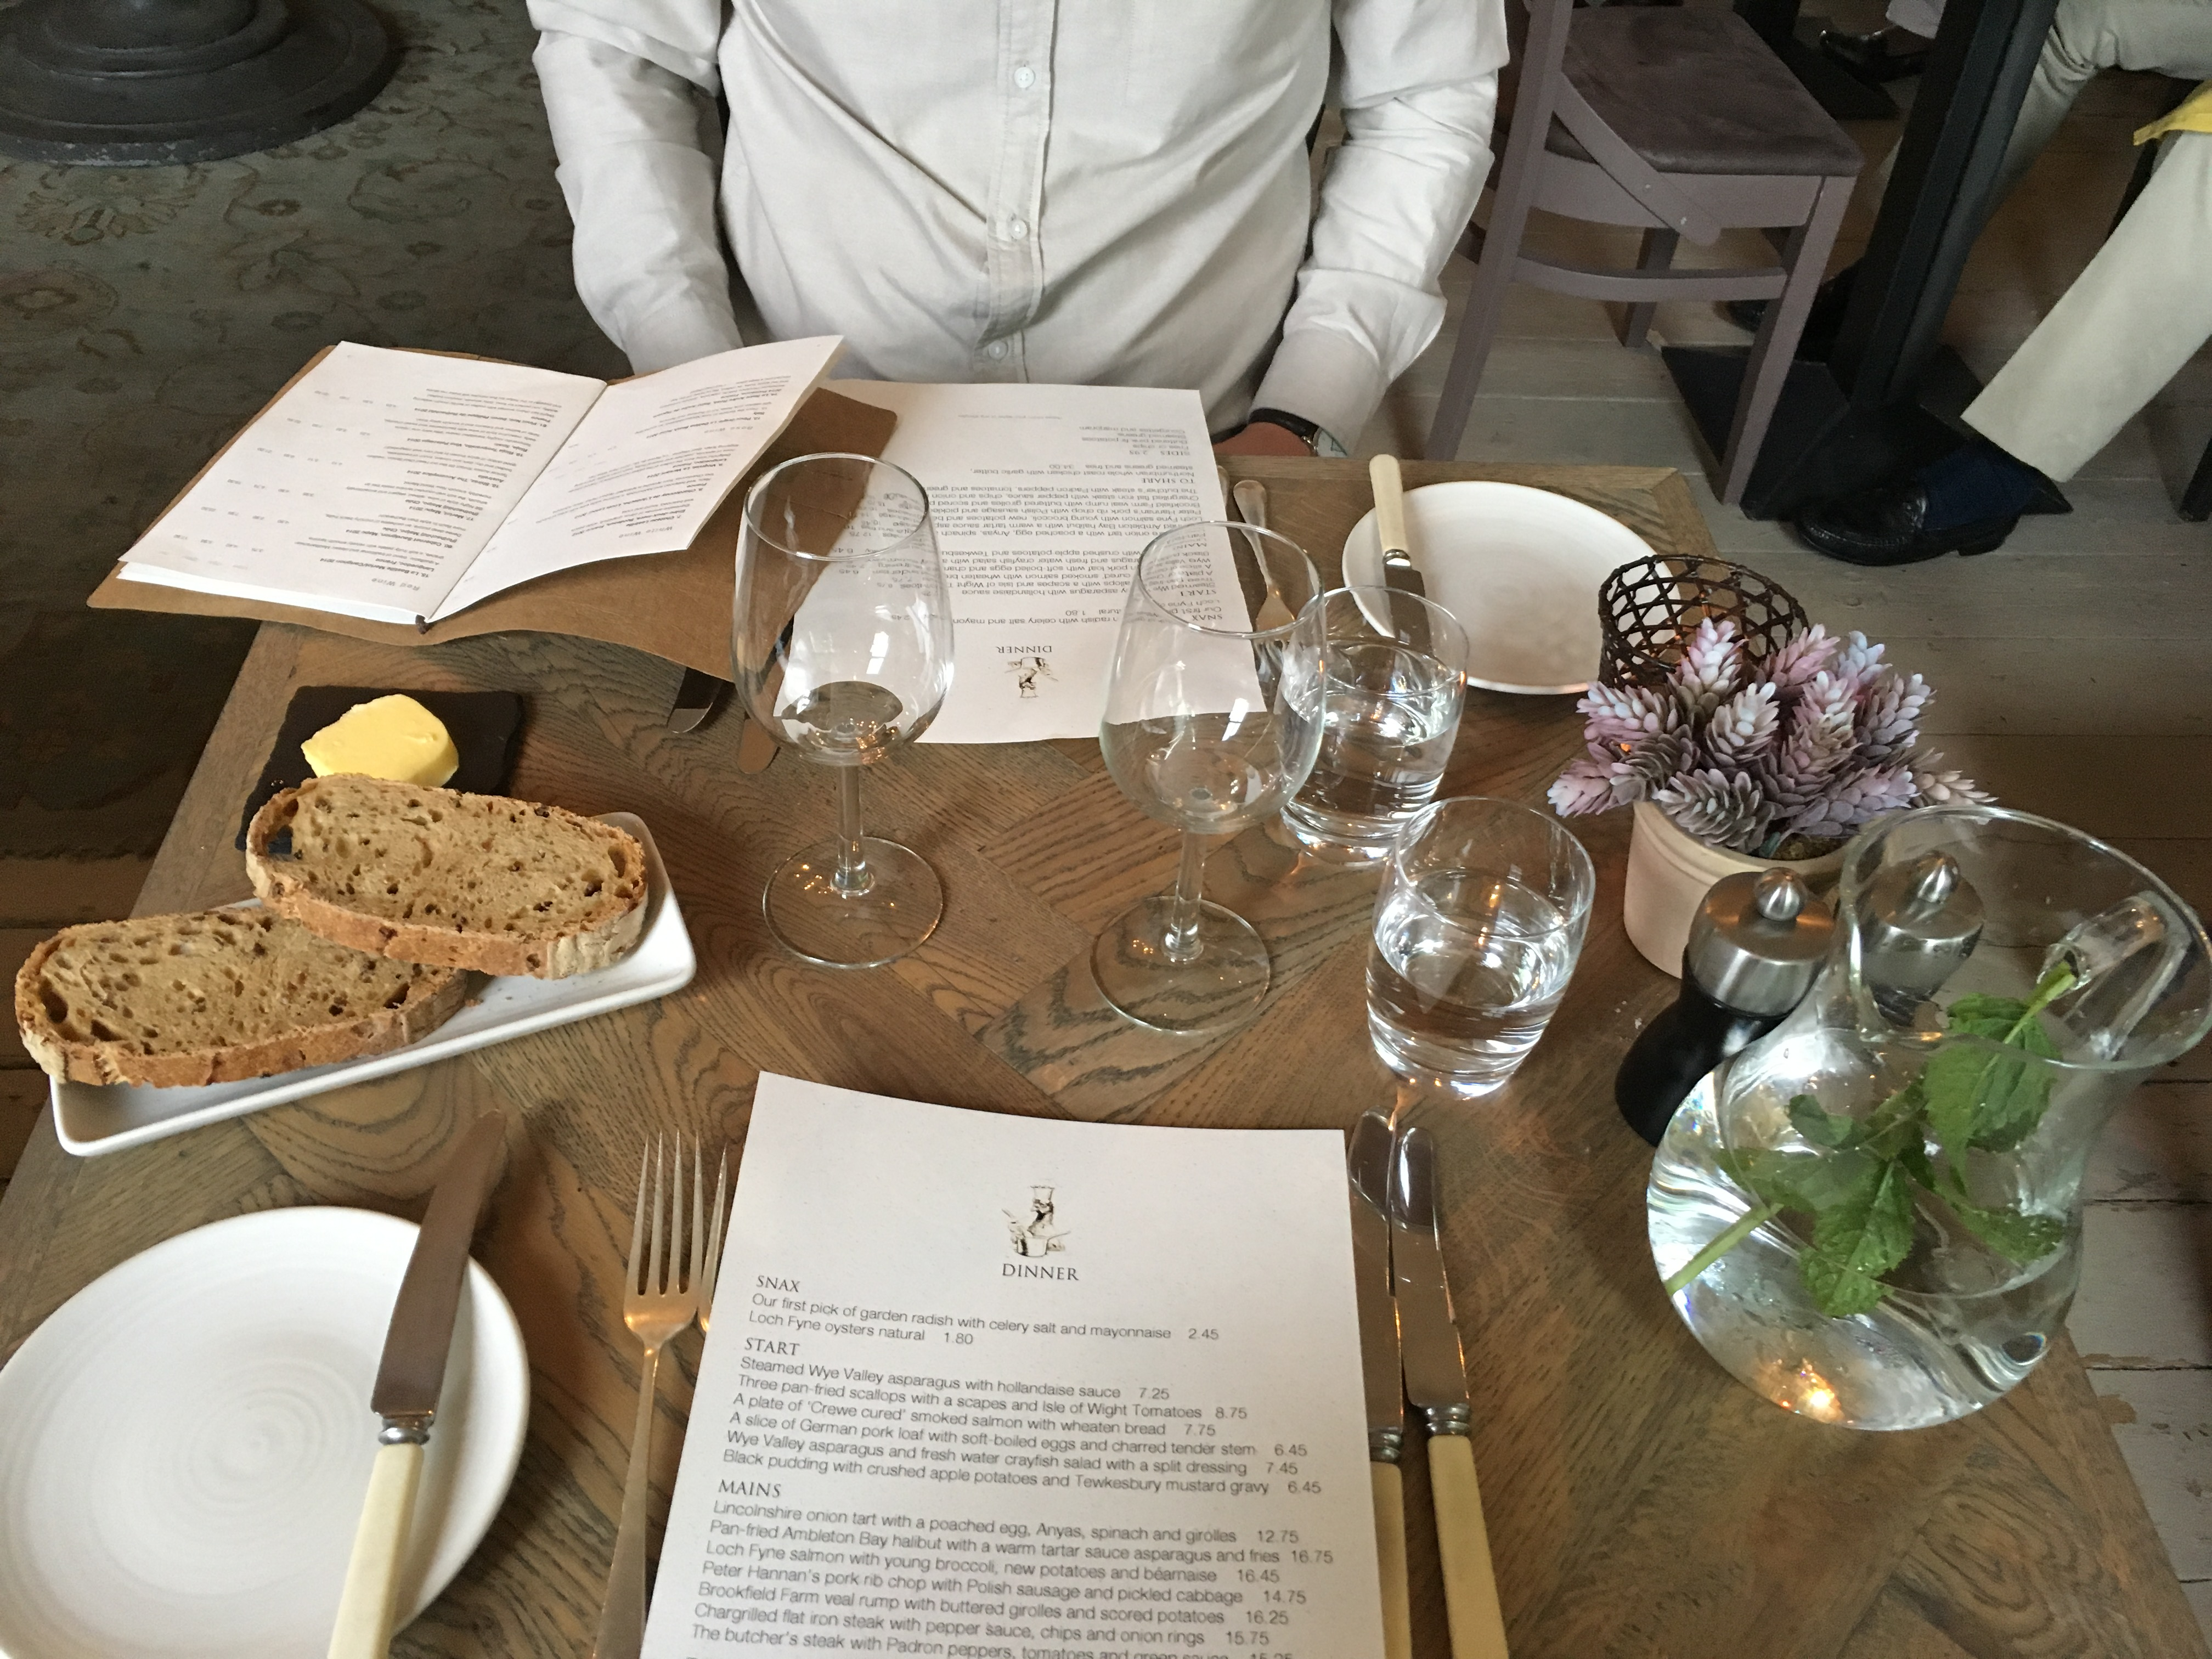 Image Shows Menu At The Lord Crewe Arms In Blanchland